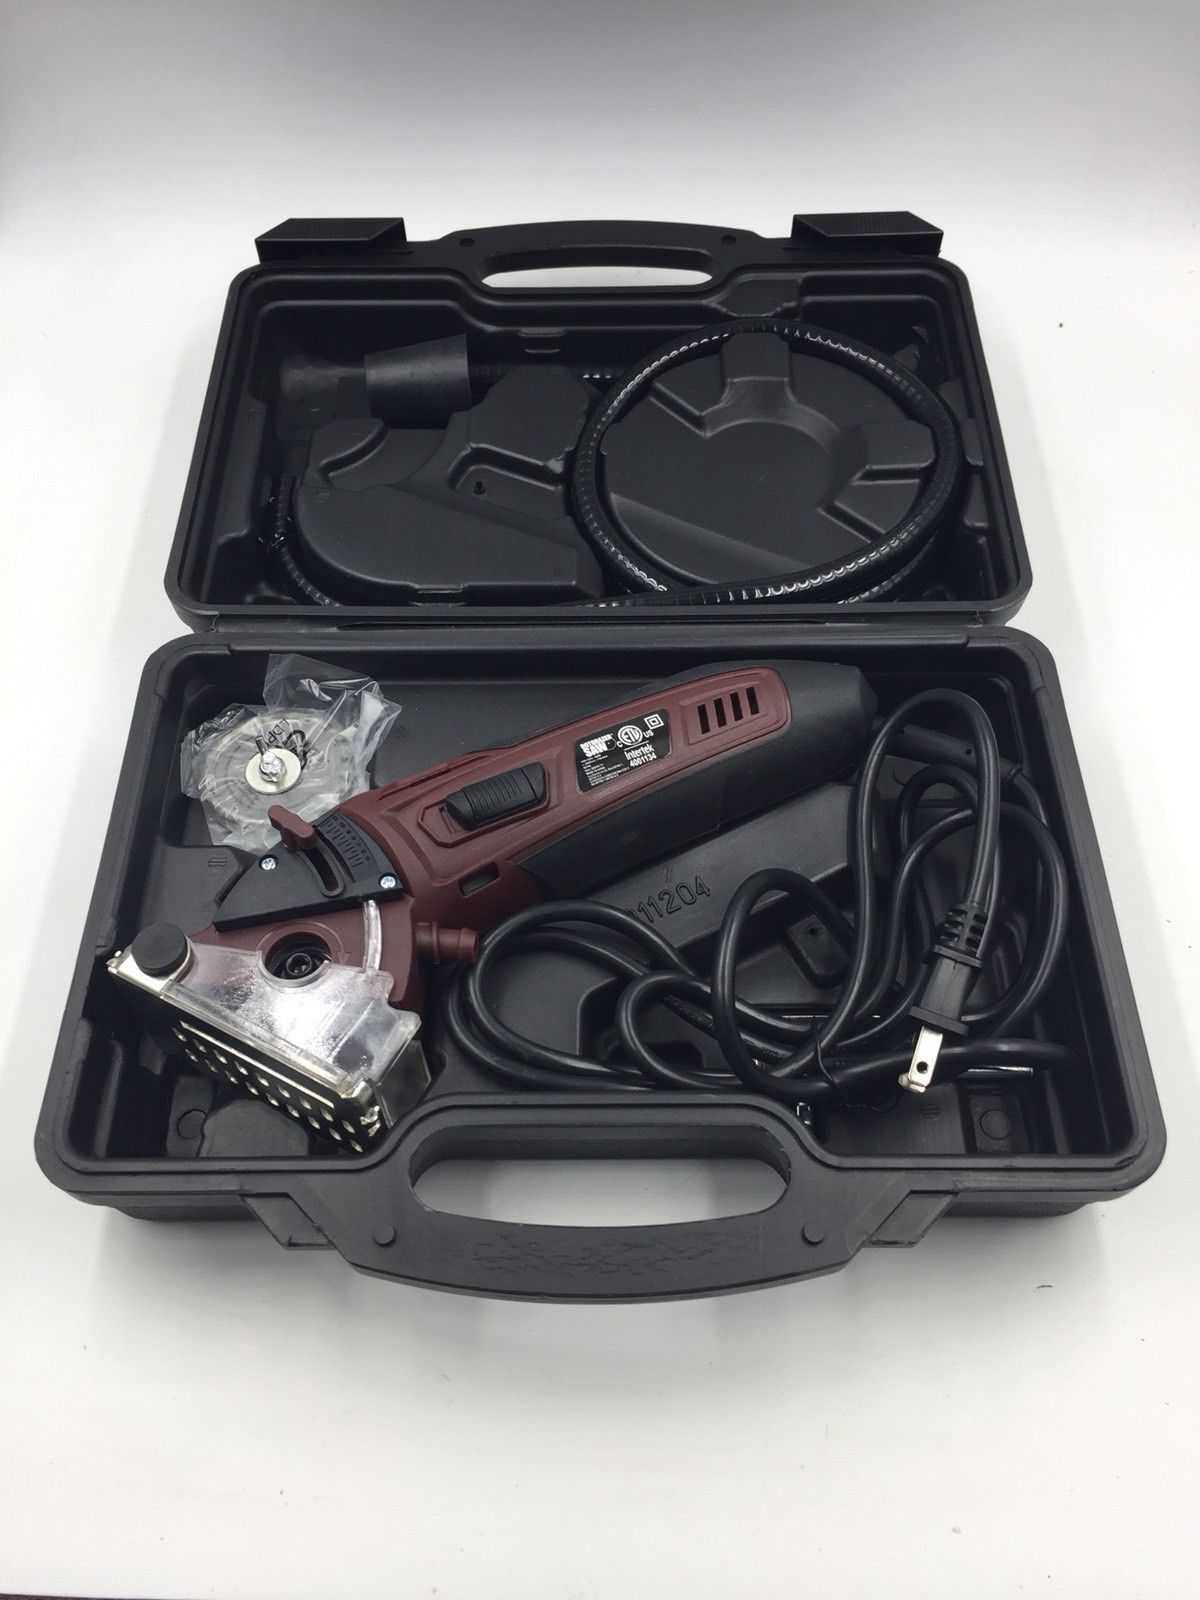 Rotorazer Saw w/ 3 Quick Change Blade and Dust Extraction System As Seen on TV